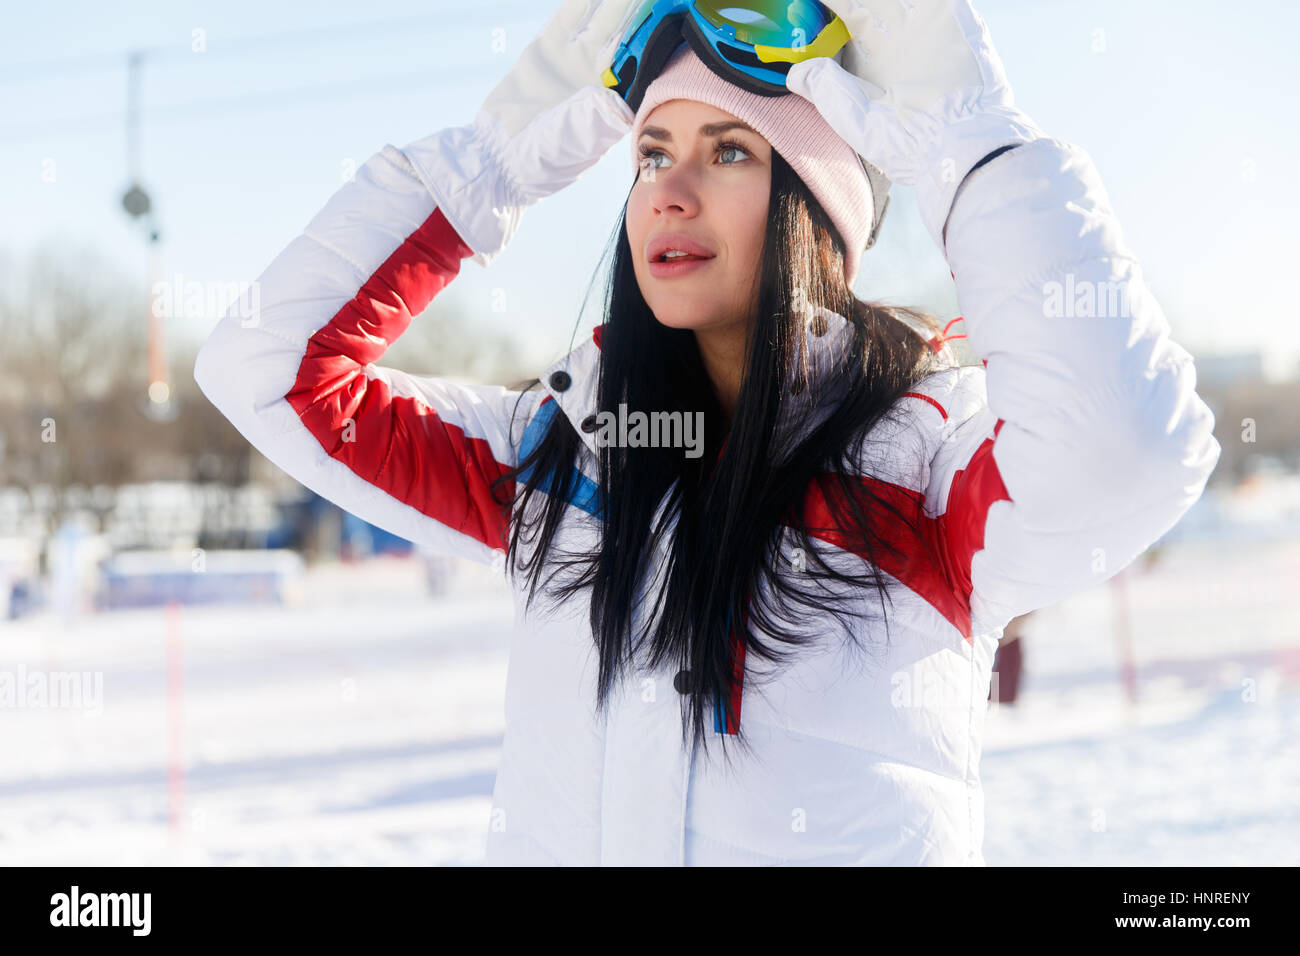 Long-haired woman in ski suit on winter weekends - Stock Image